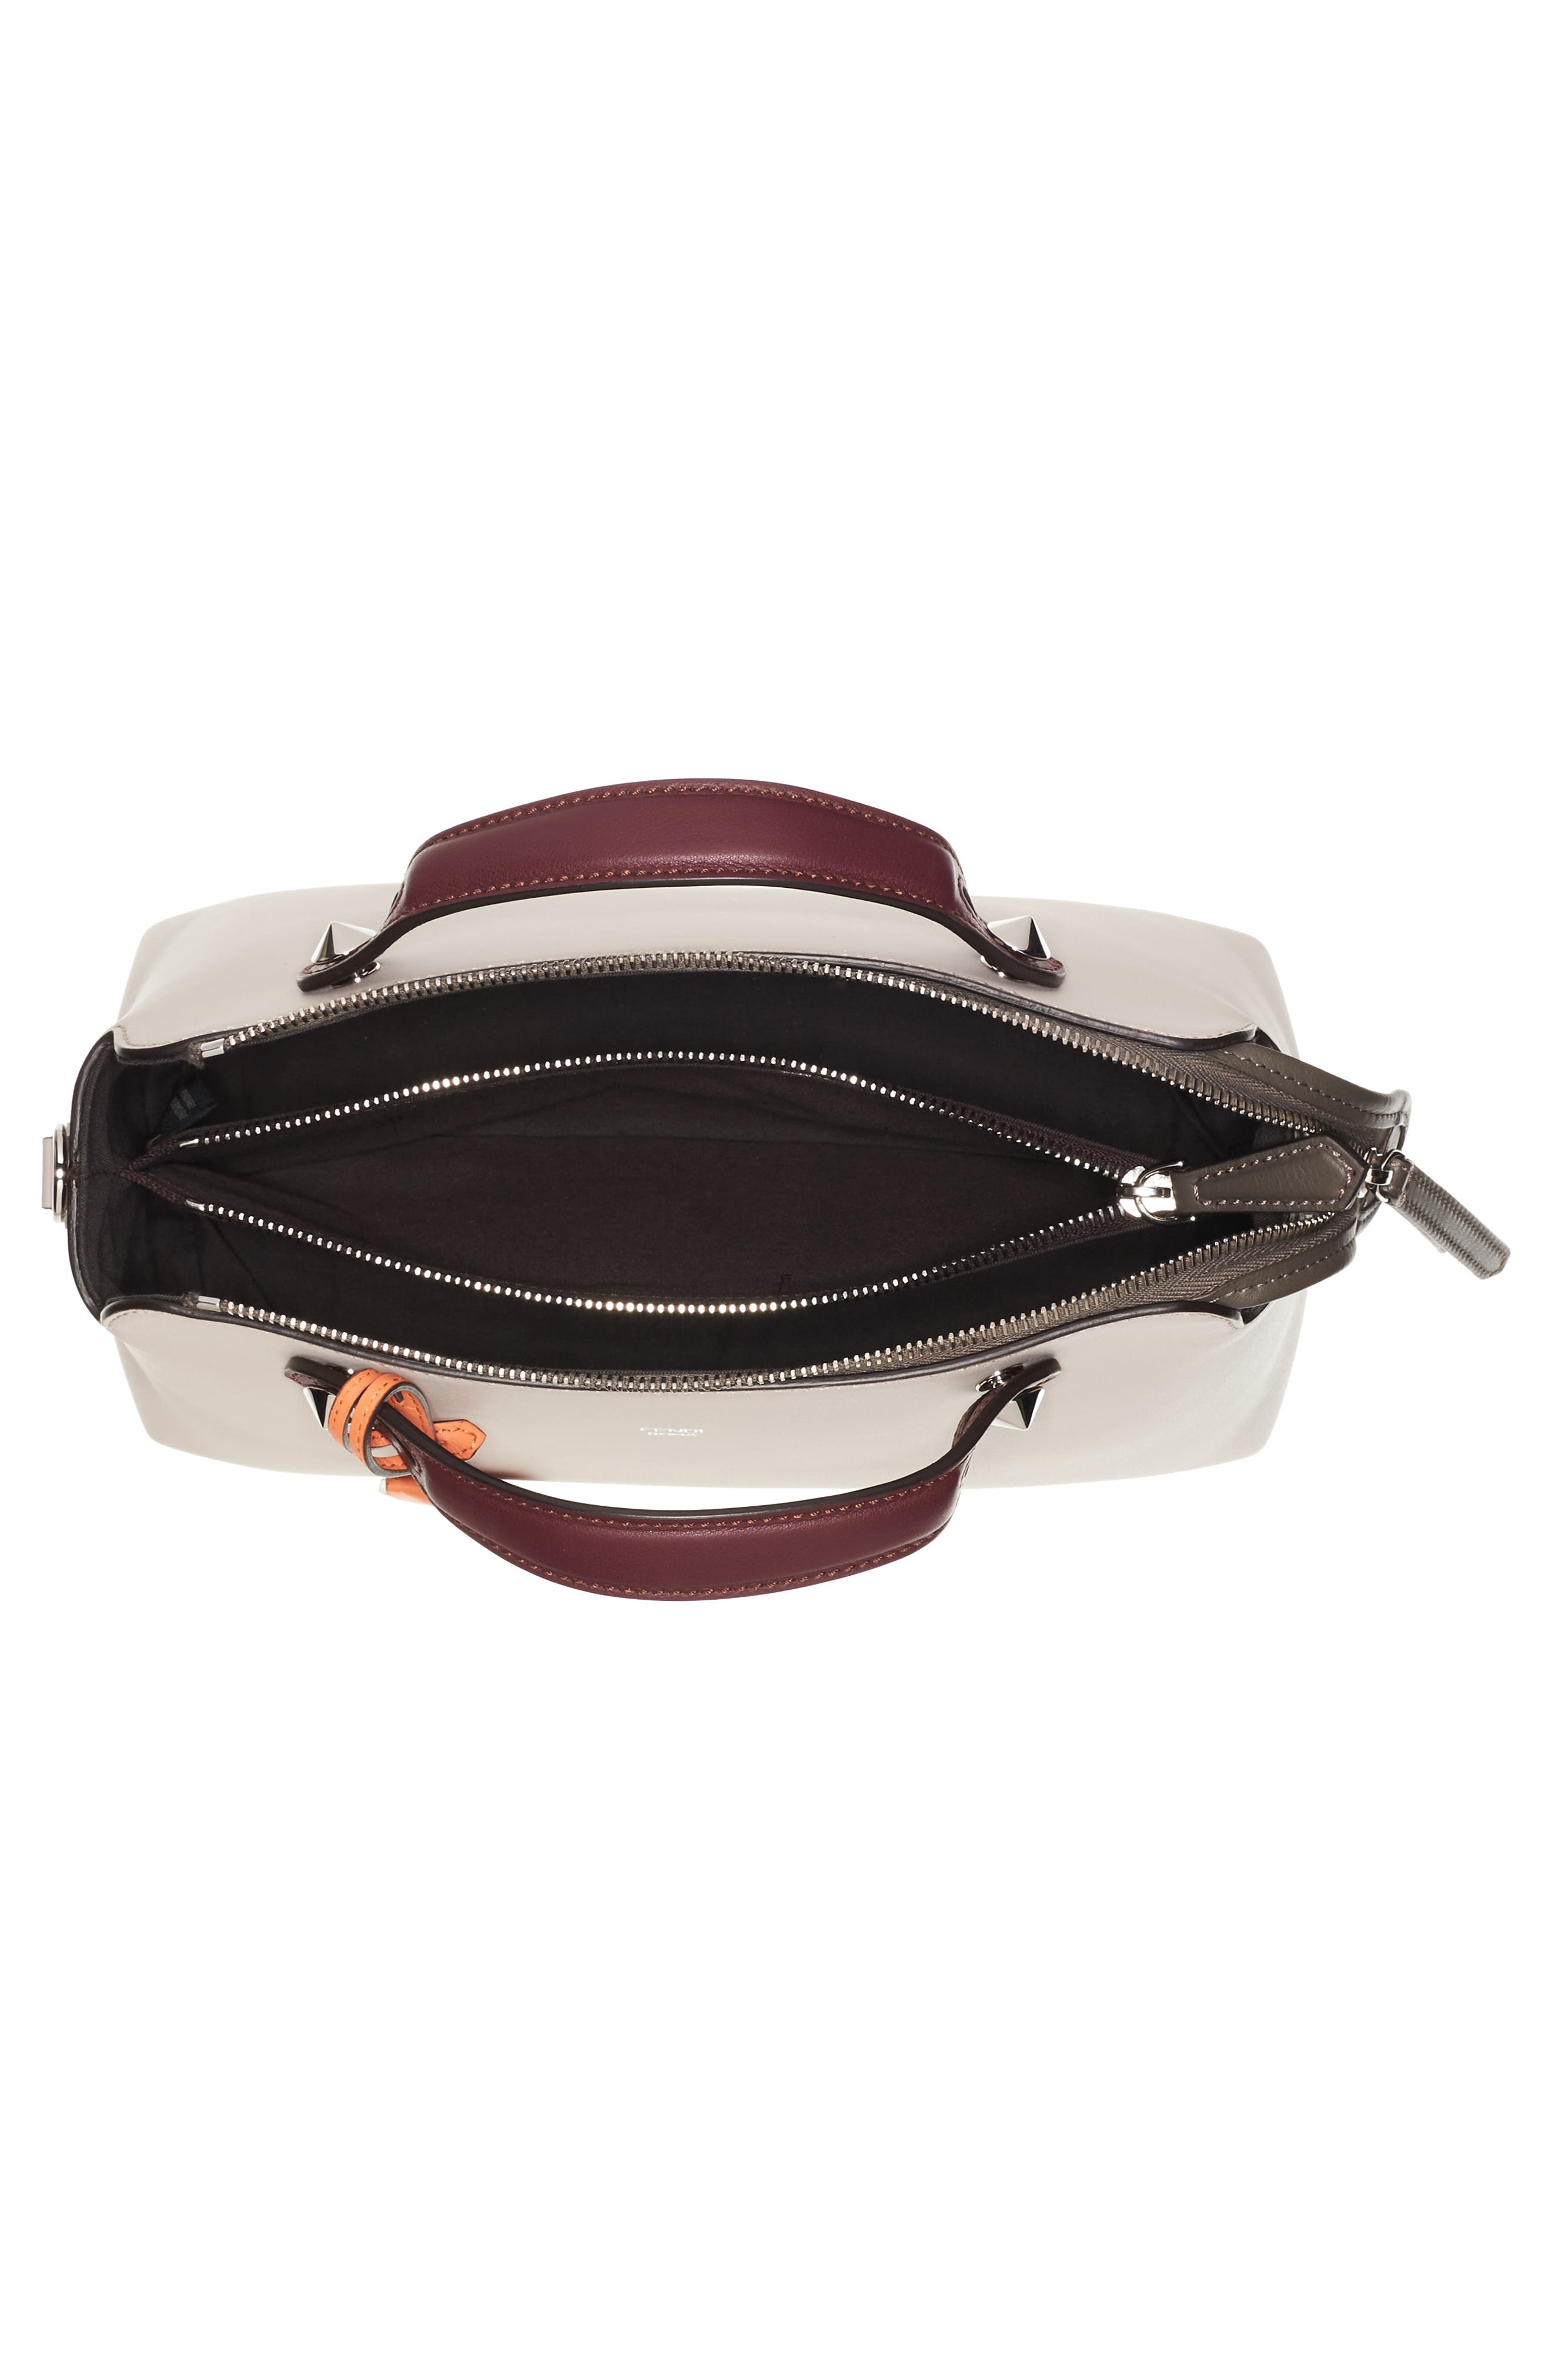 Alternate Image 3  - Fendi 'Medium By the Way' Colorblock Leather Shoulder Bag